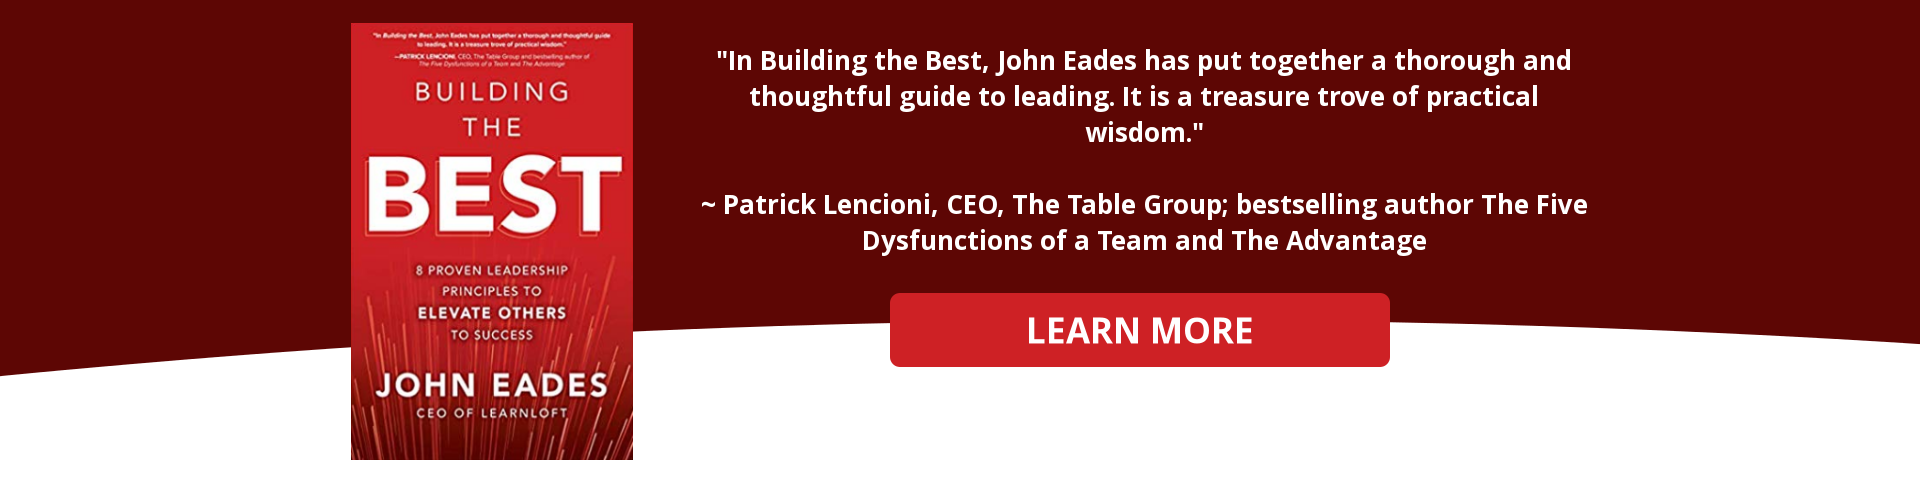 Building the Best by John Eades